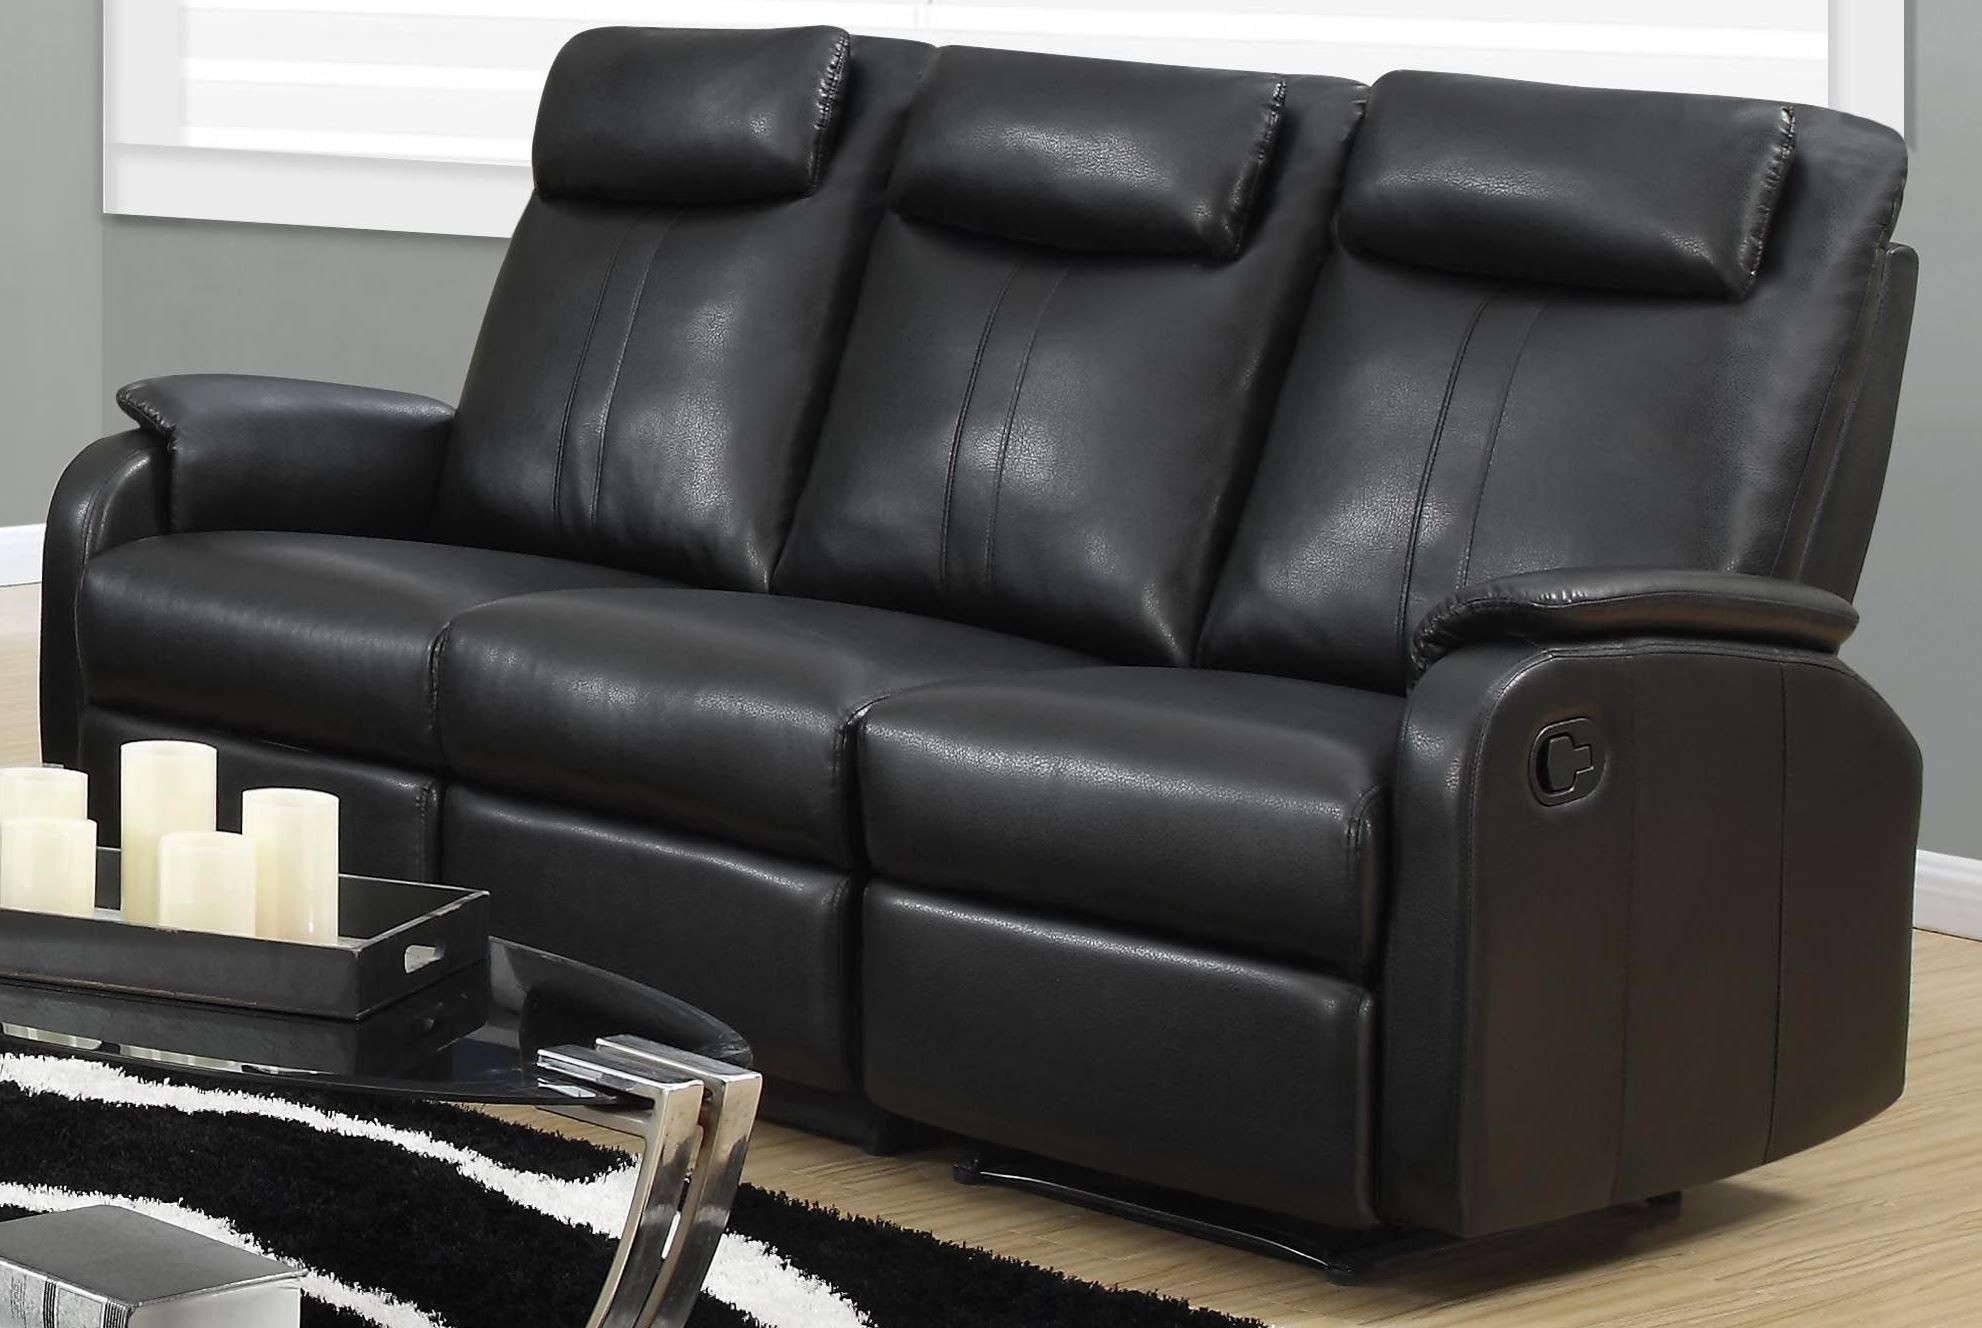 81bk 3 black bonded leather reclining sofa from monarch. Black Bedroom Furniture Sets. Home Design Ideas